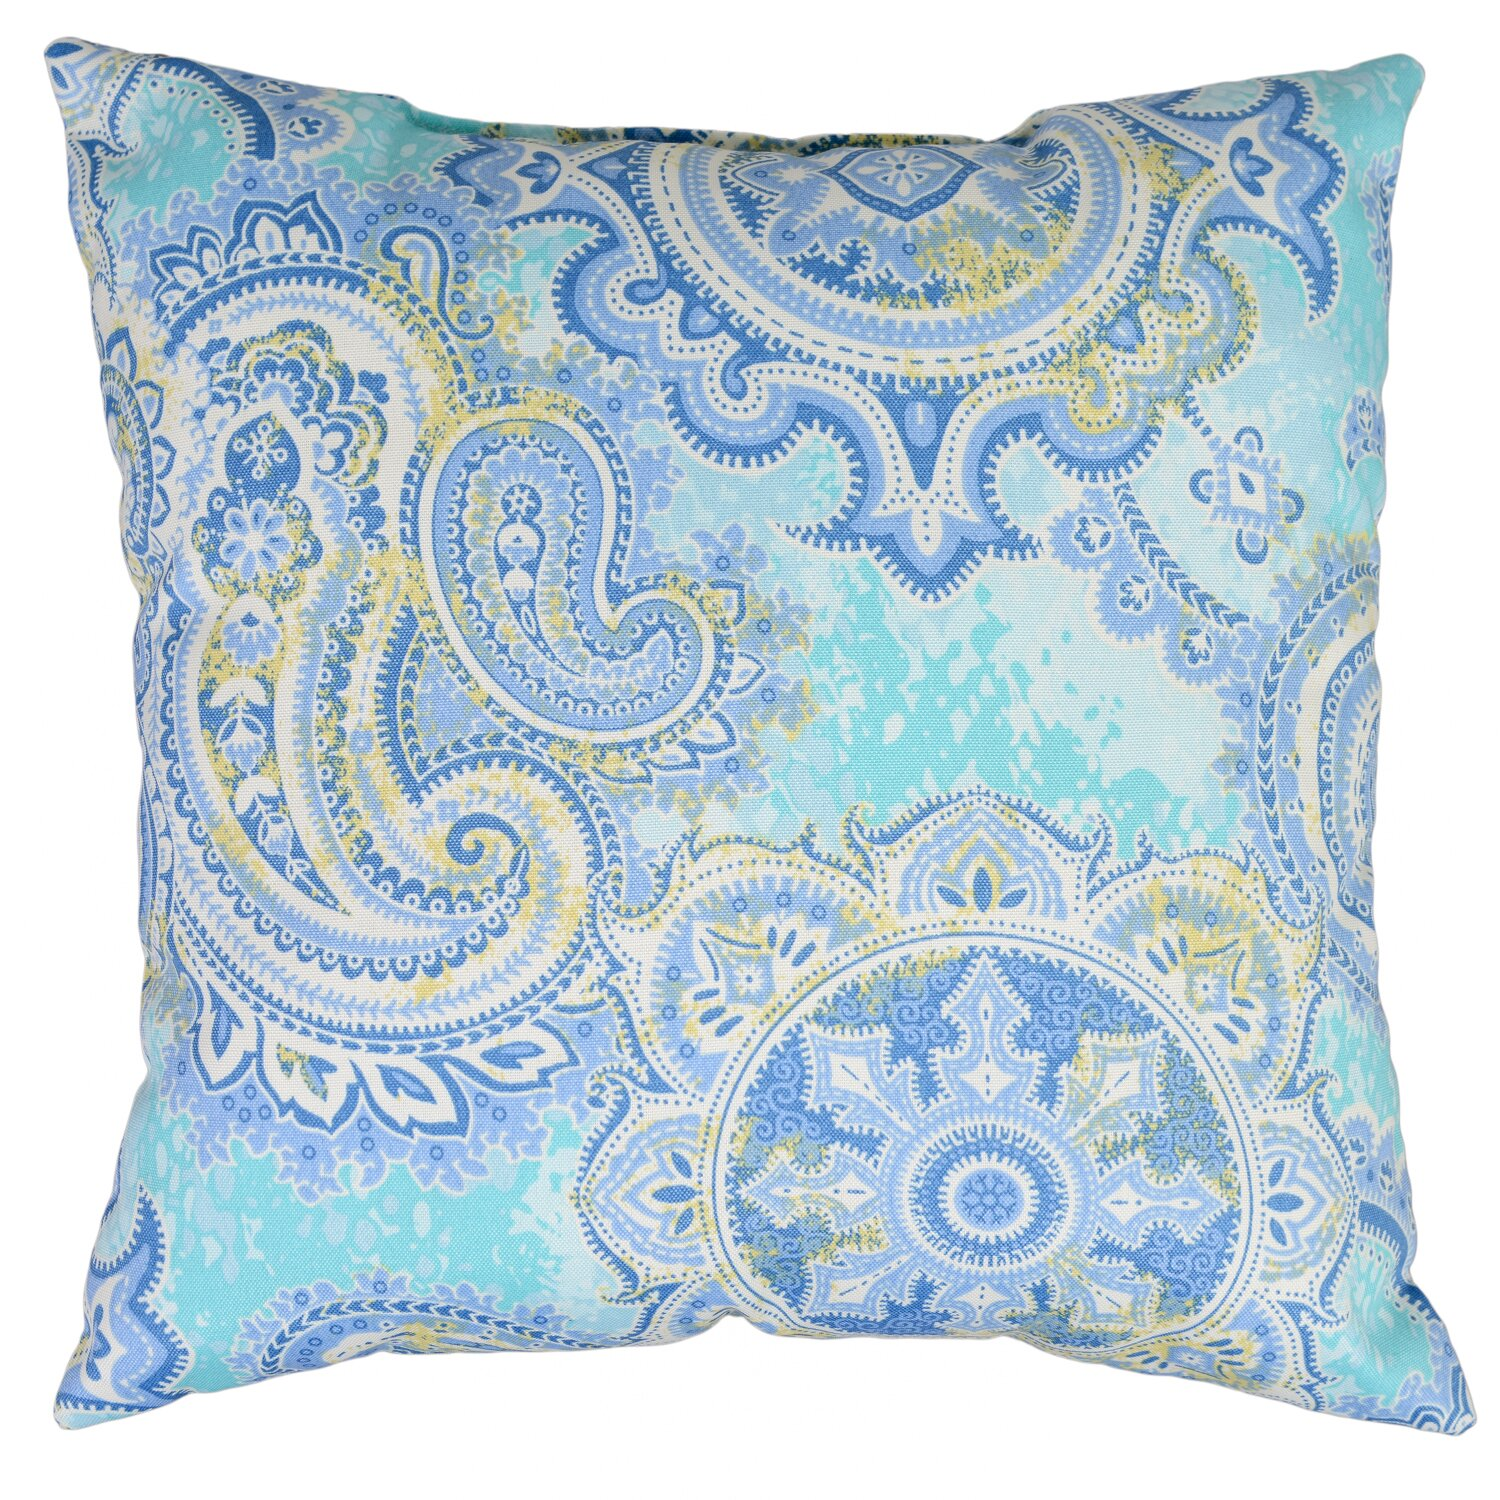 Wayfair Blue Decorative Pillows : Swan Dye and Printing Houssie Throw Pillow & Reviews Wayfair.ca